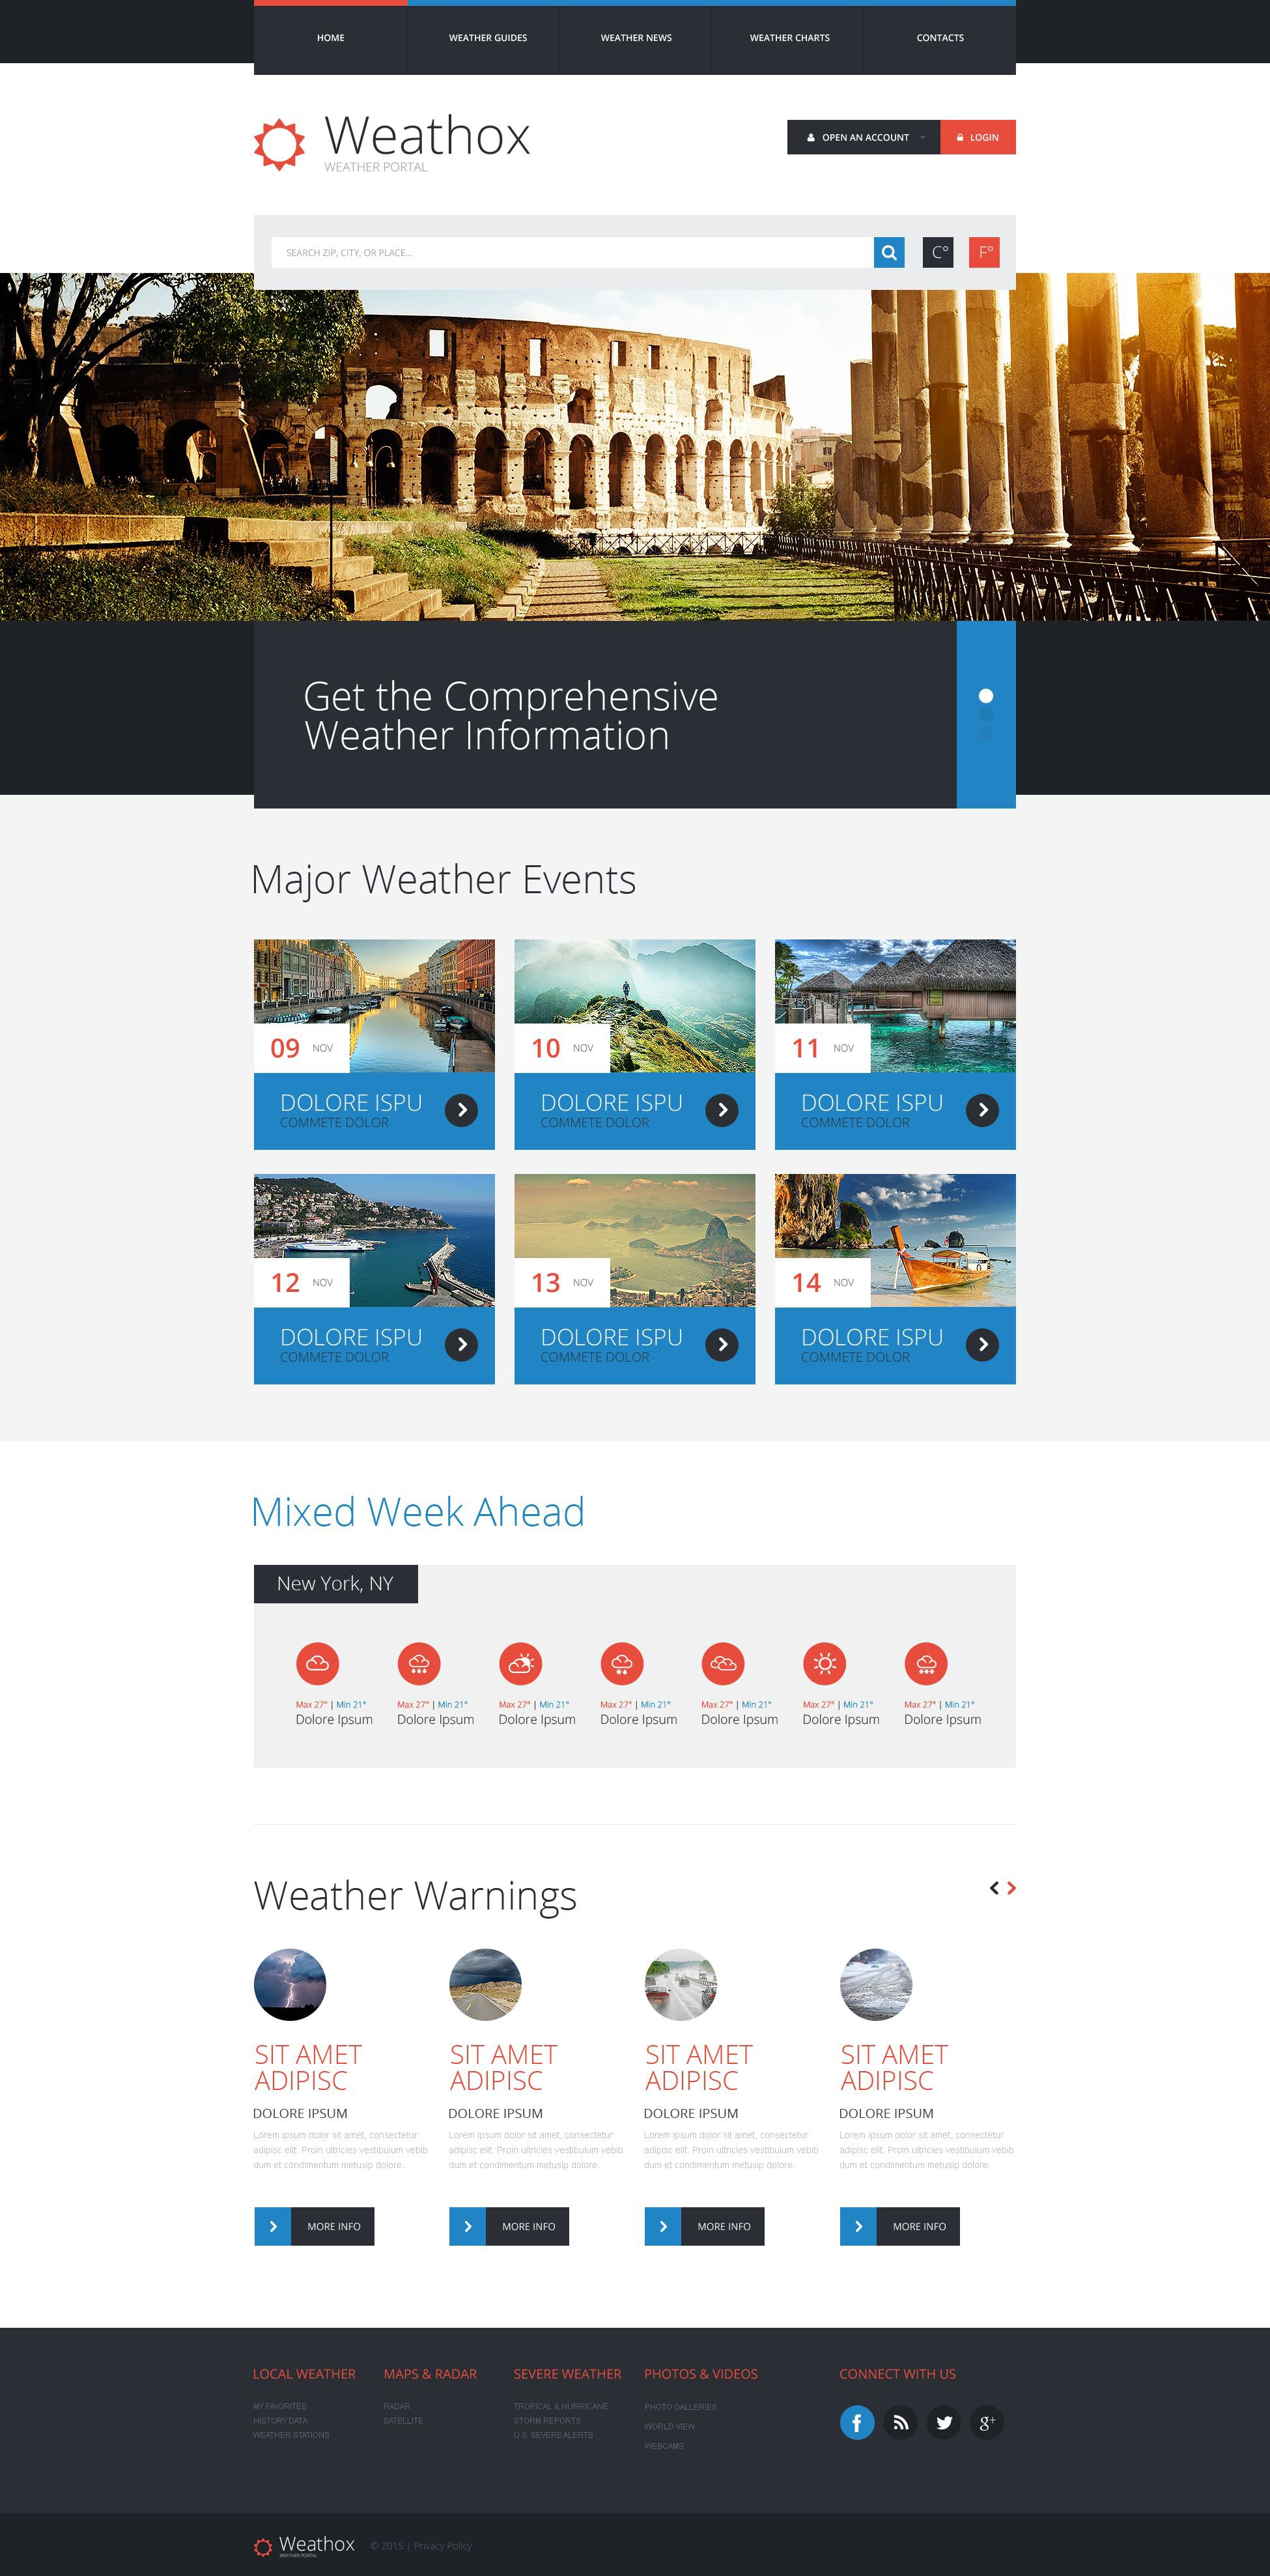 The Weathox Weather Forecast Portal Responsive Javascript Animated Design 53291, one of the best website templates of its kind (media, most popular), also known as weathox weather forecast portal website template, forum website template, charts website template, news website template, frost website template, thaw website template, winter website template, snow website template, slush website template, rain and related with weathox weather forecast portal, forum, charts, news, frost, thaw, winter, snow, slush, rain, etc.